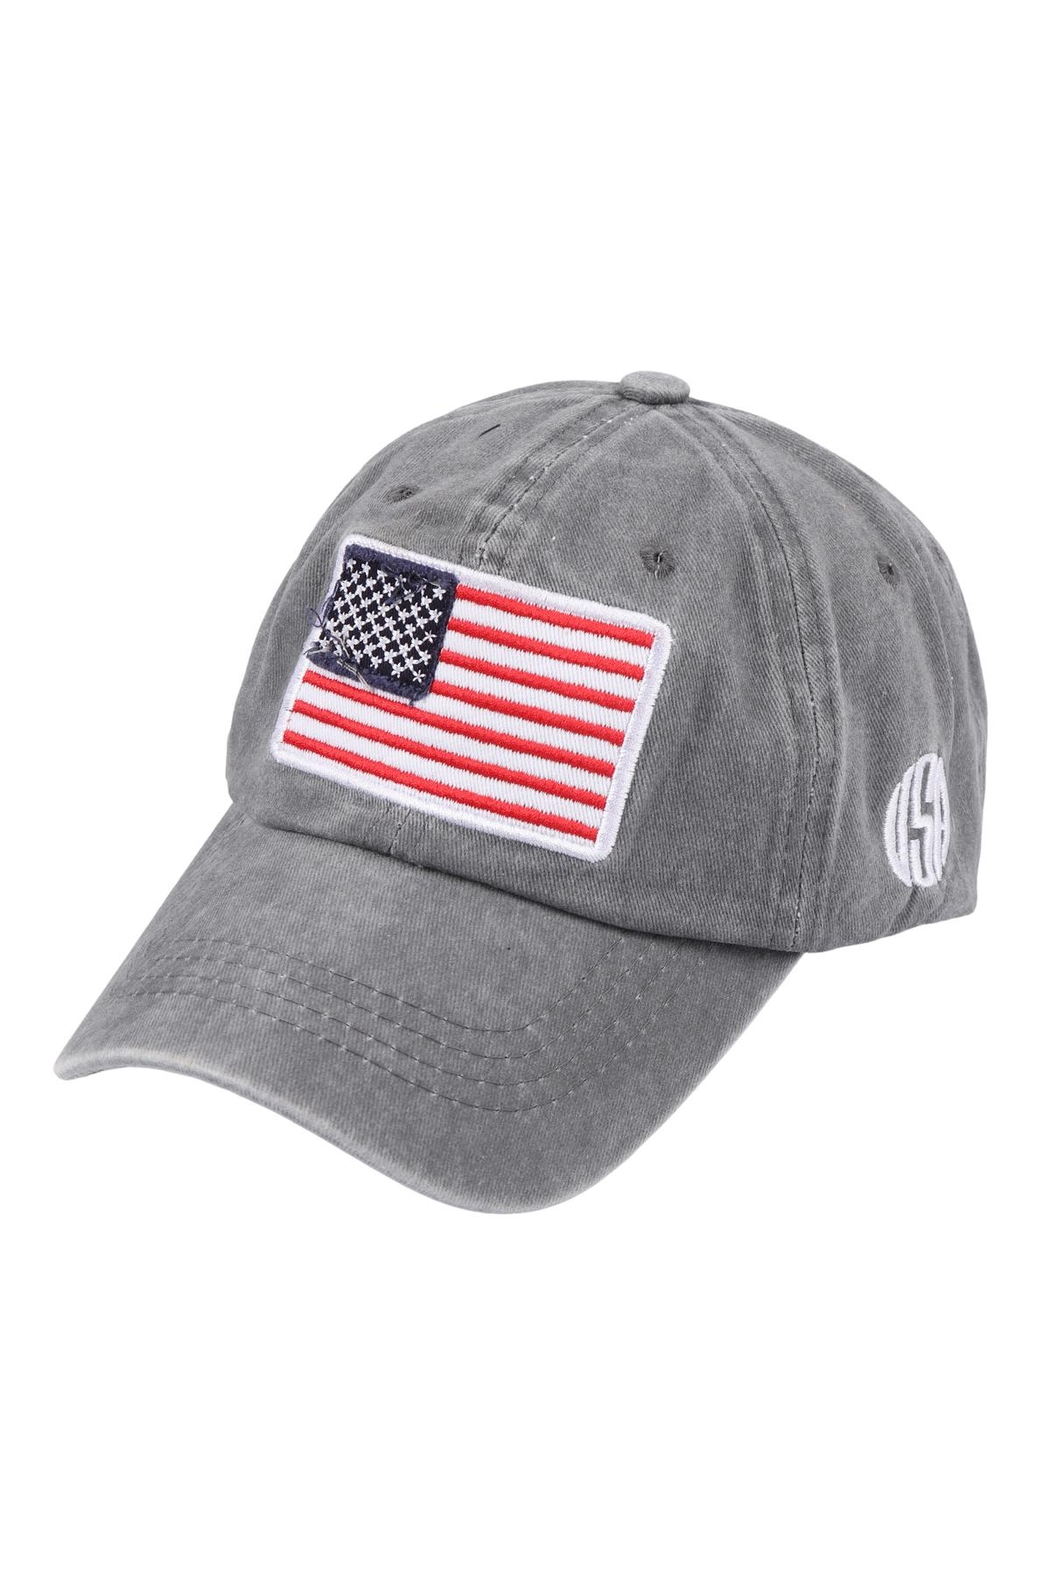 Riah Fashion Usa-American-Flag-Fashion-Embroiedered-Baseball-Cap - Front Cropped Image